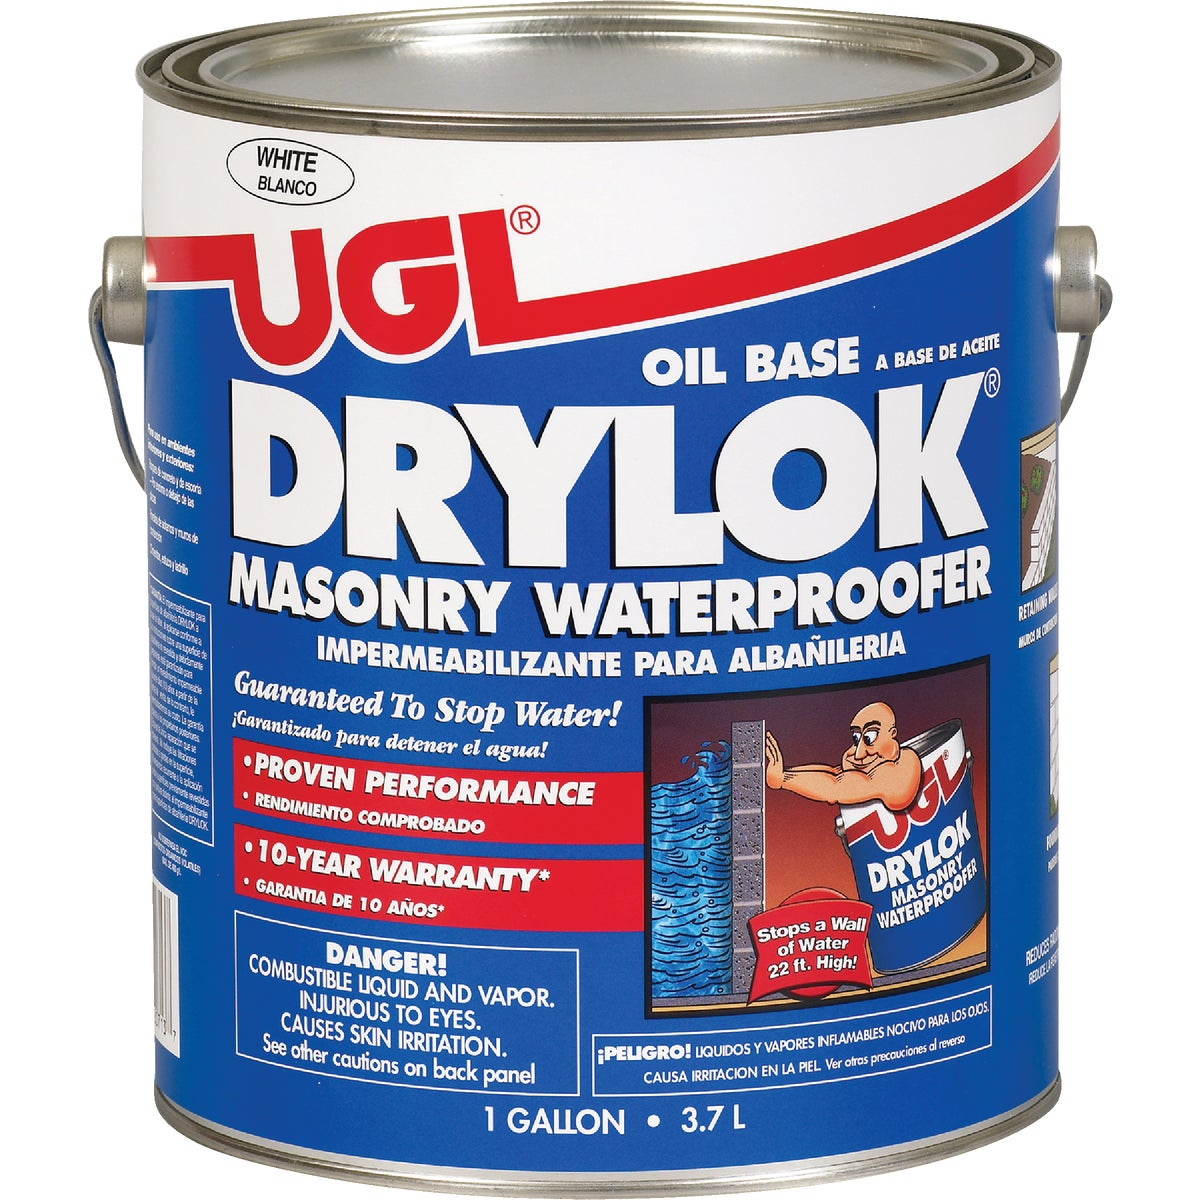 WHT MASONRY WATERPROOFER